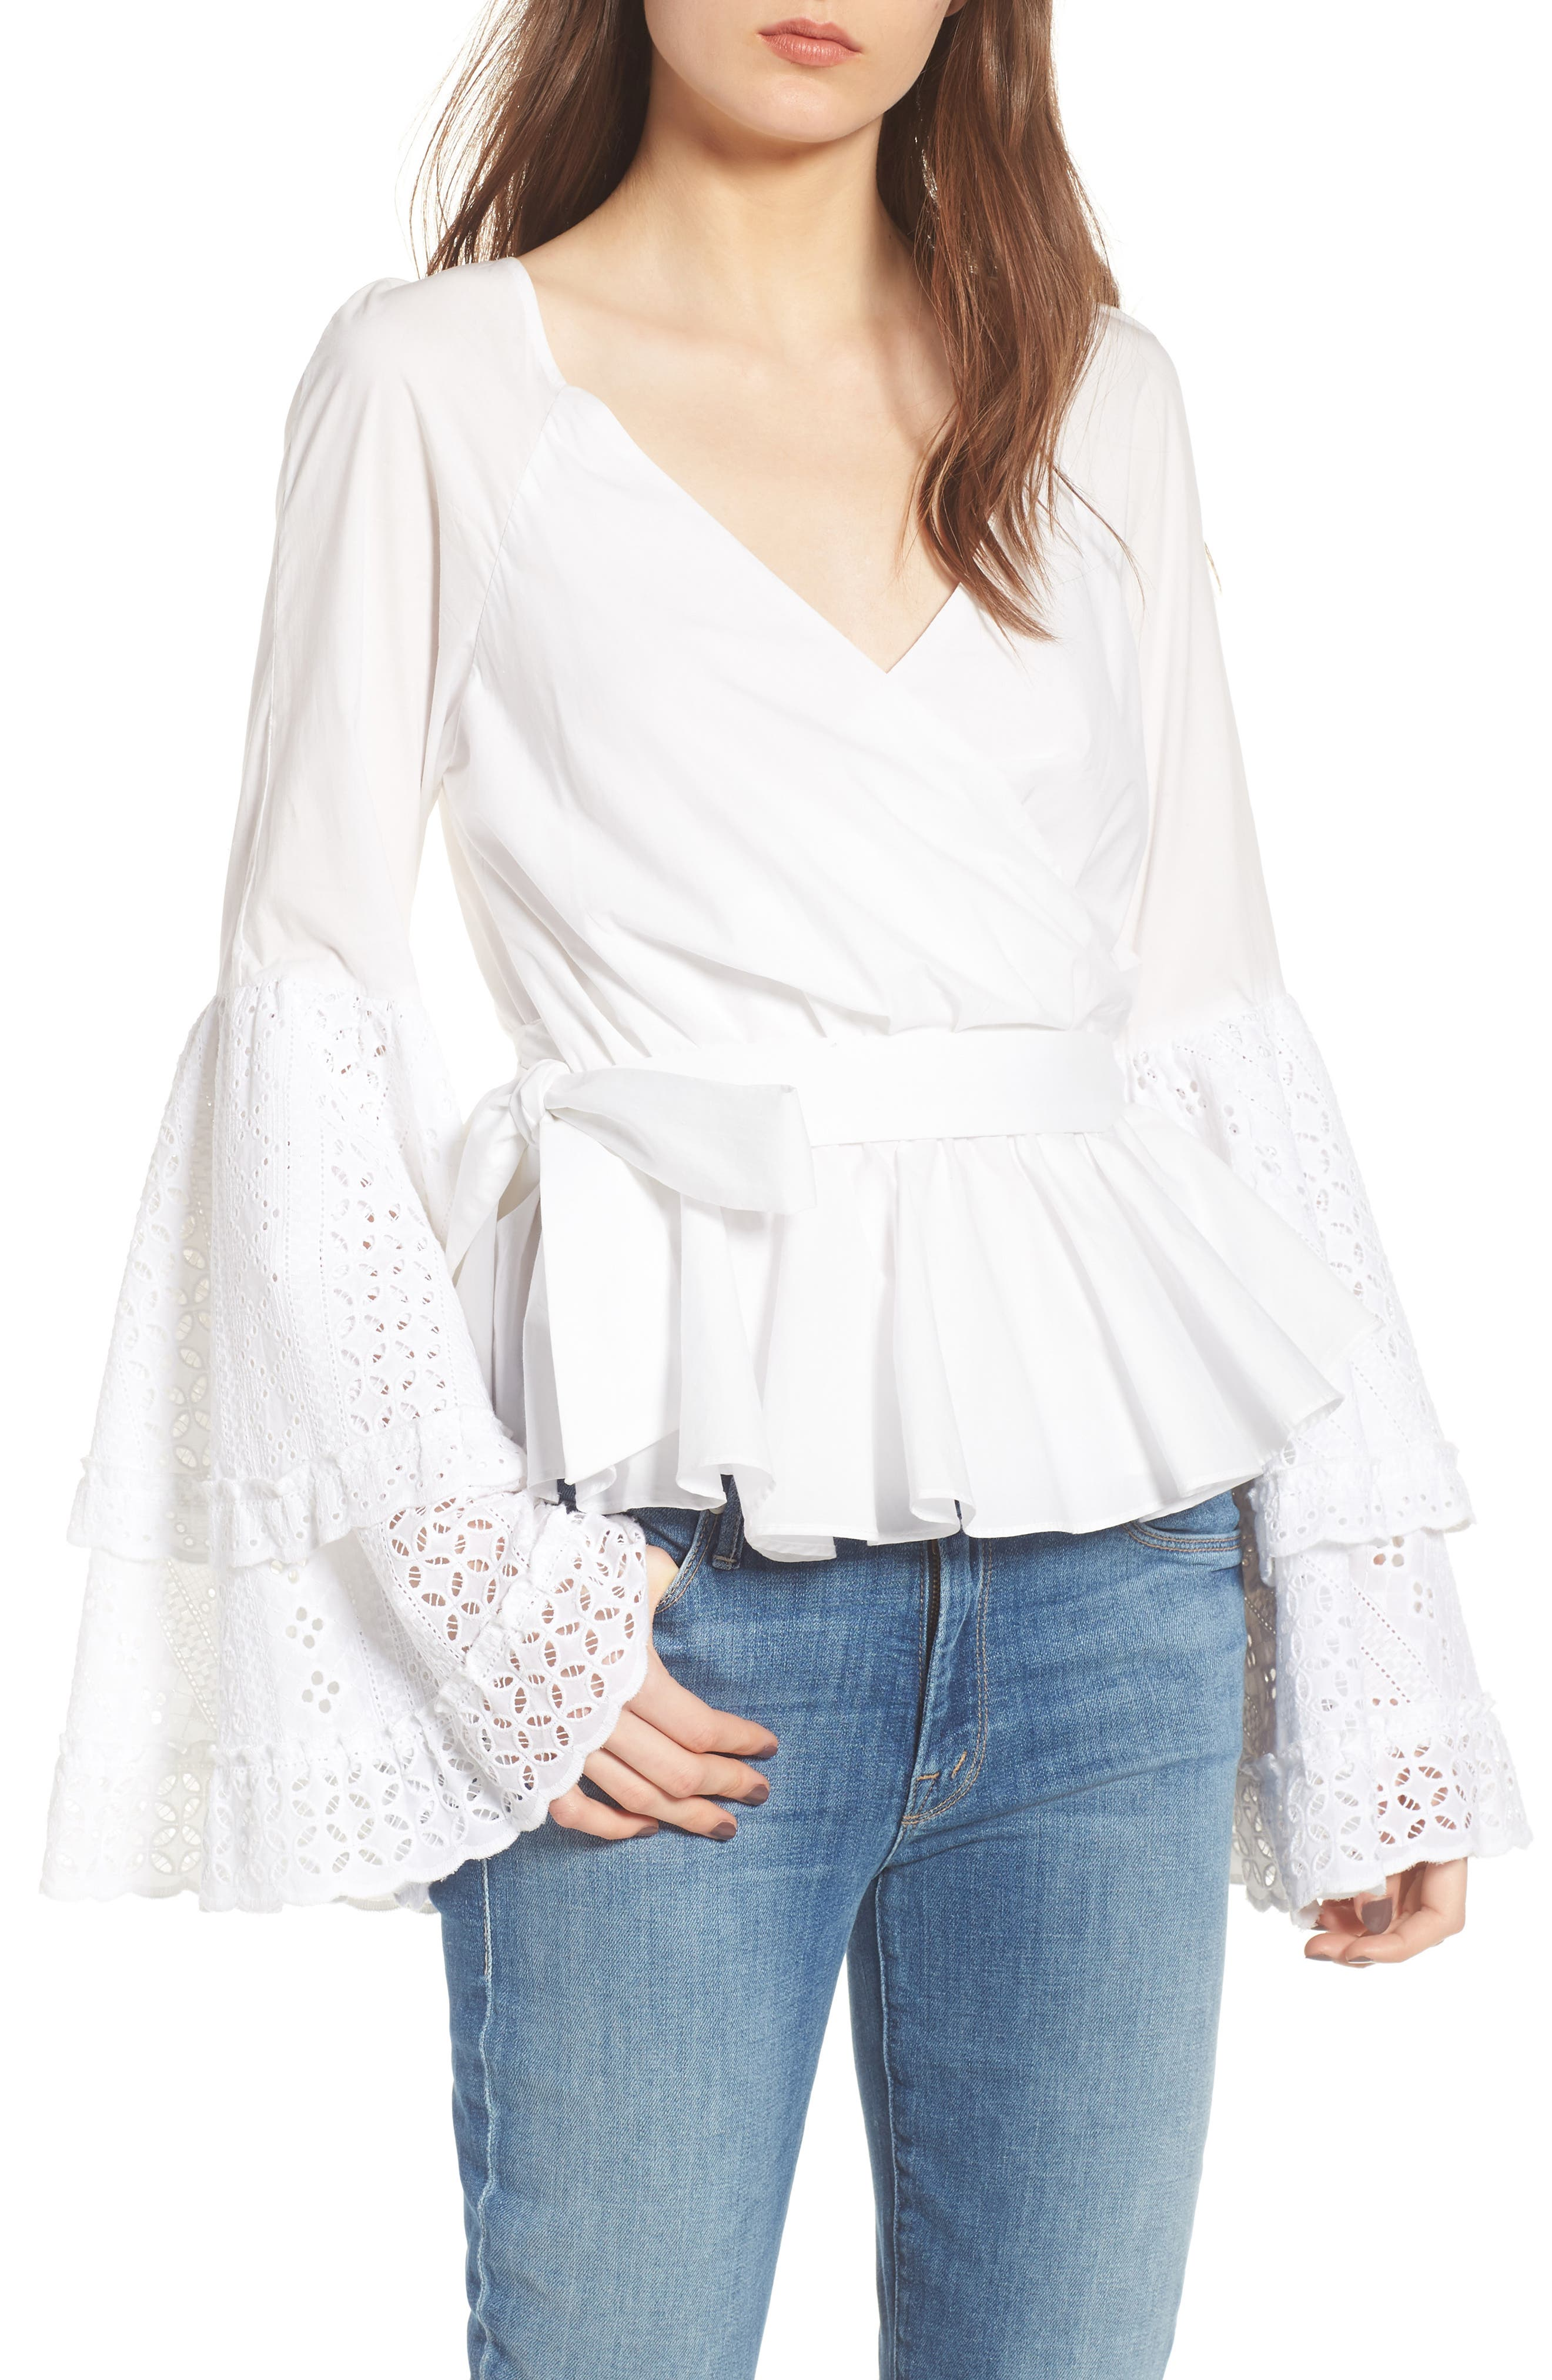 Melly Top,                             Main thumbnail 1, color,                             White